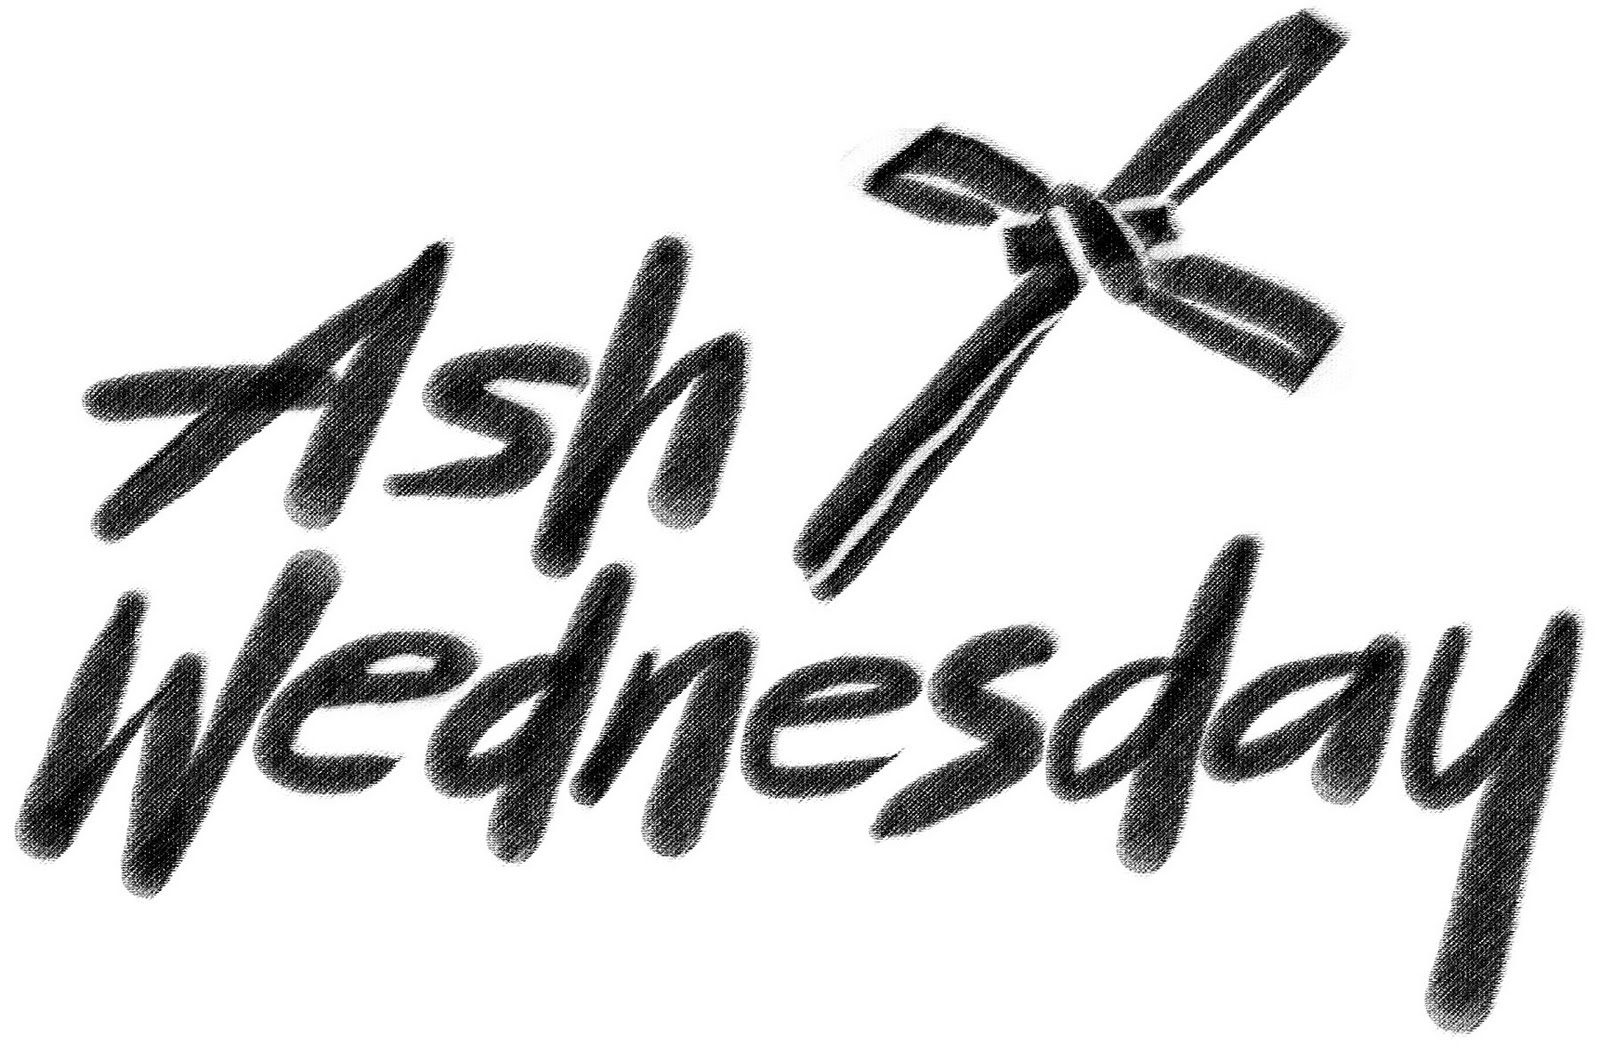 ash wednesday clip art free clipart panda free clipart images rh clipartpanda com ash wednesday clip art free ash wednesday clipart black and white